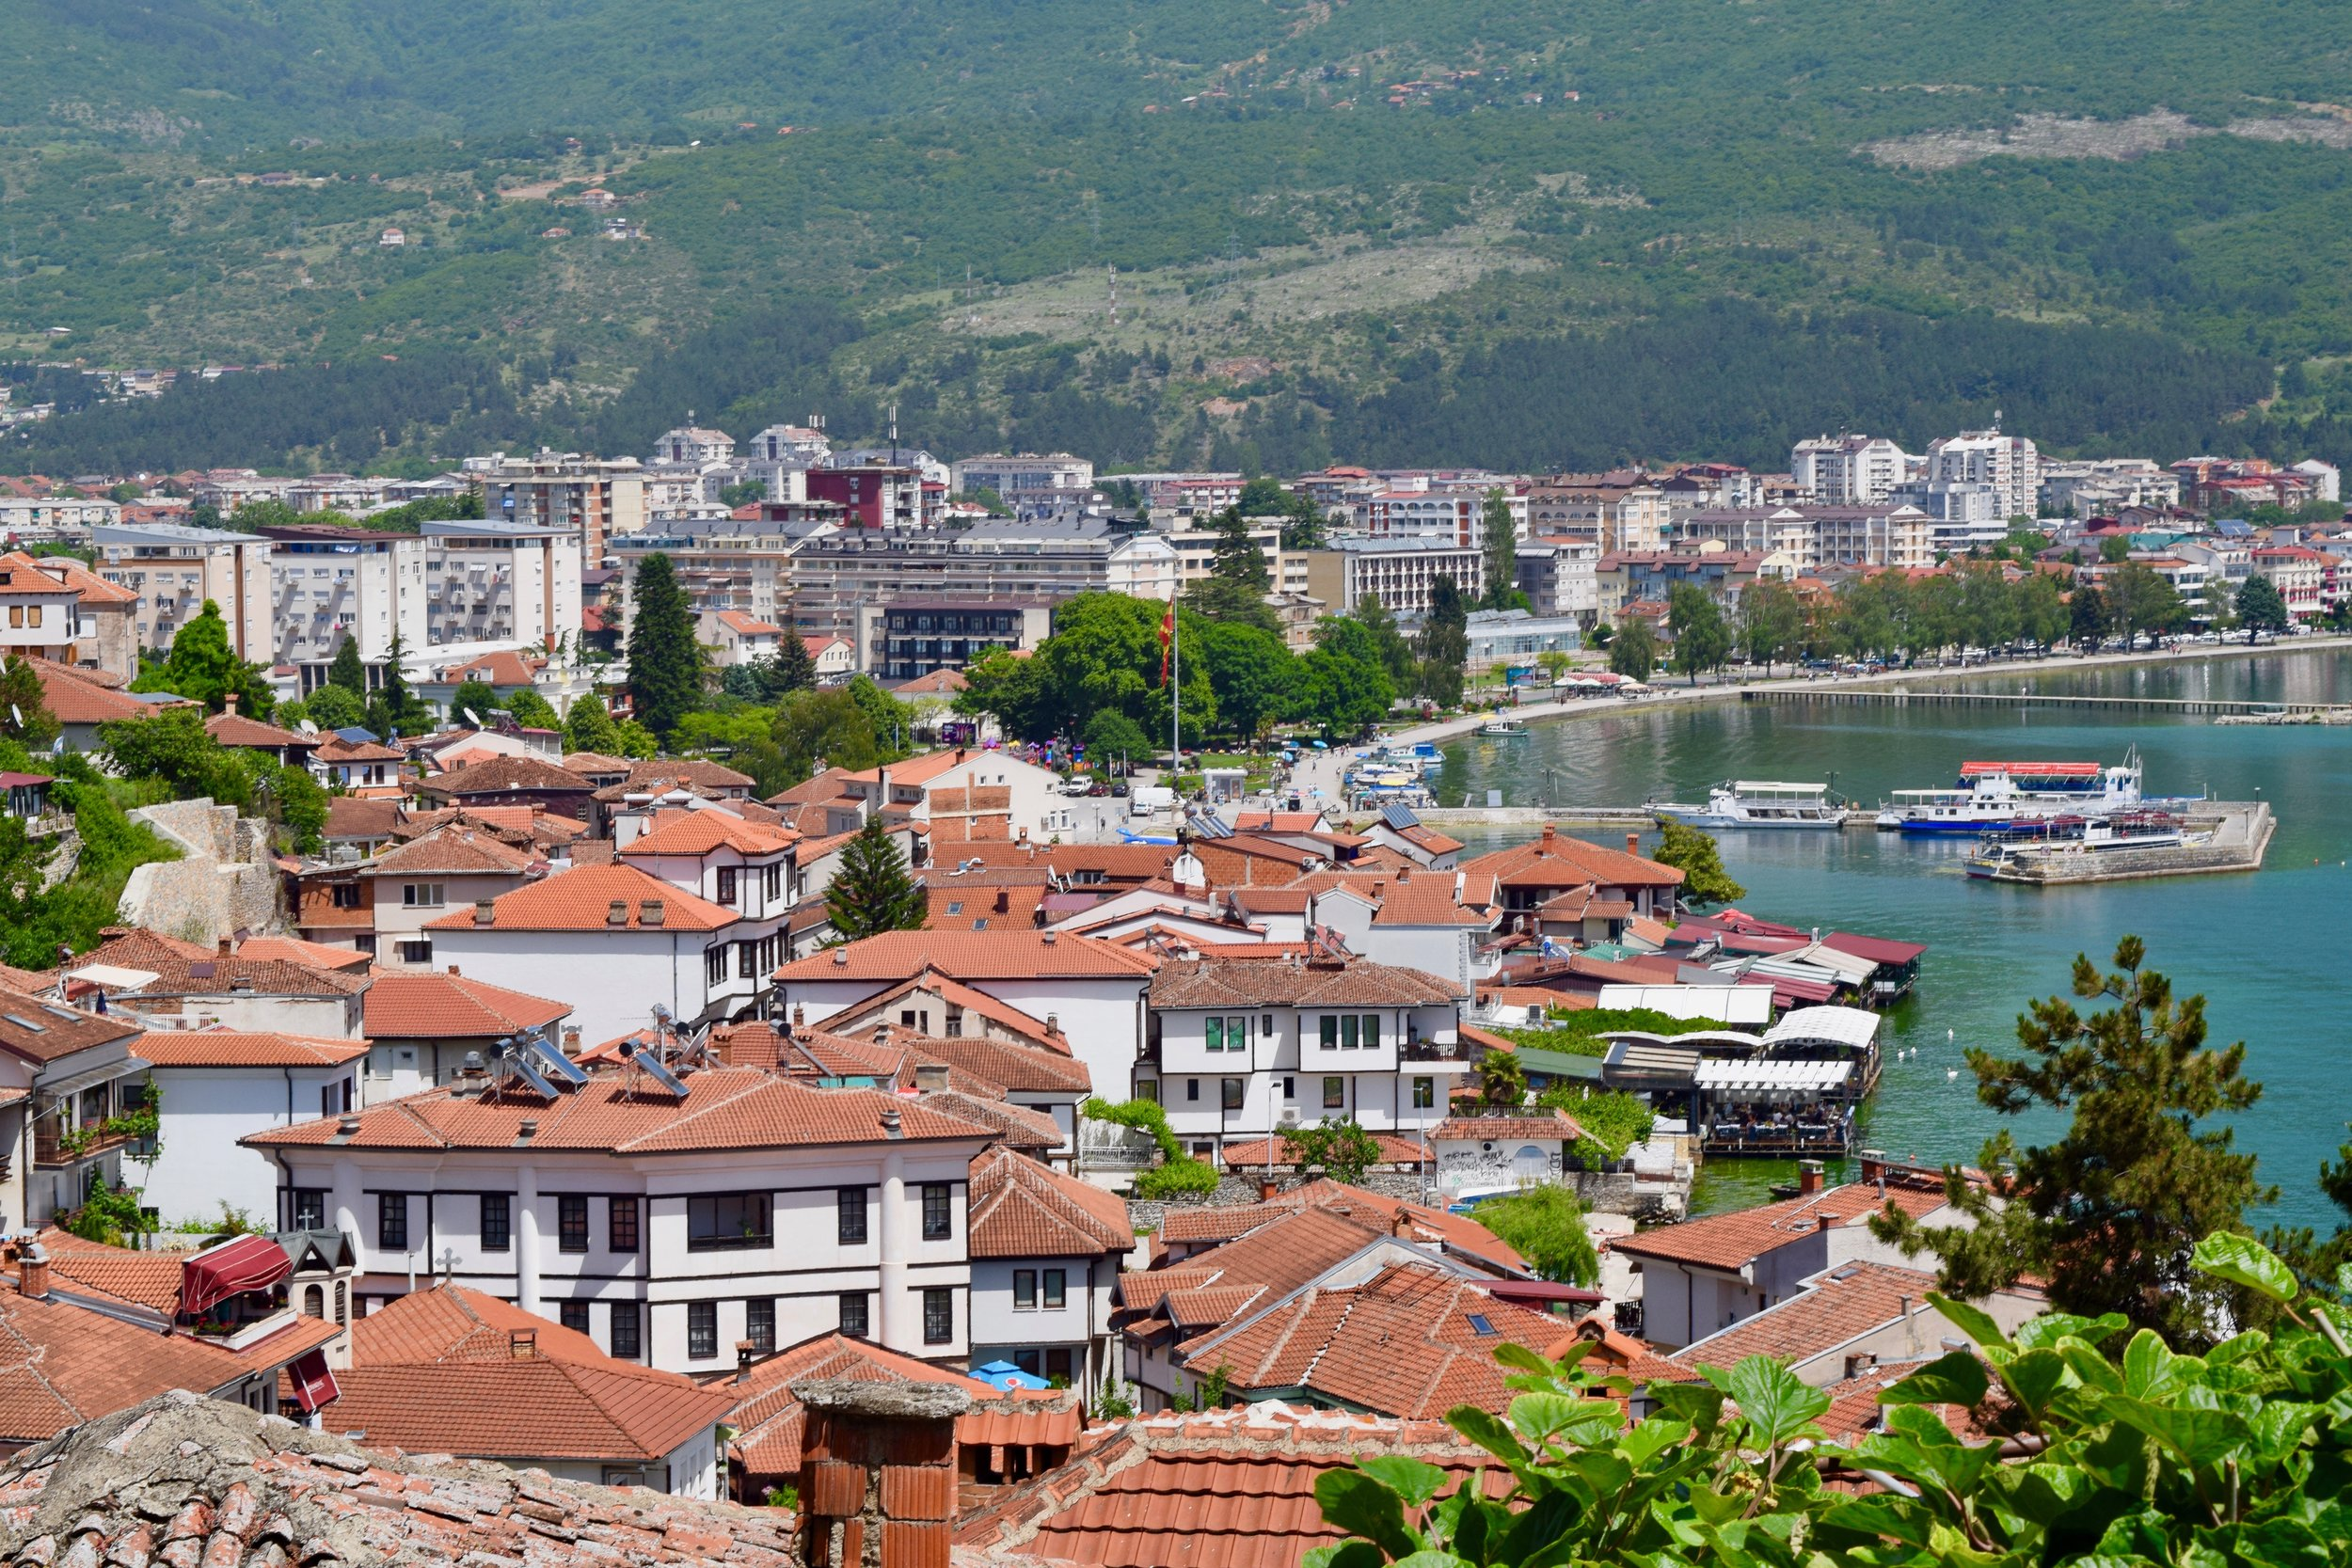 View of Ohrid